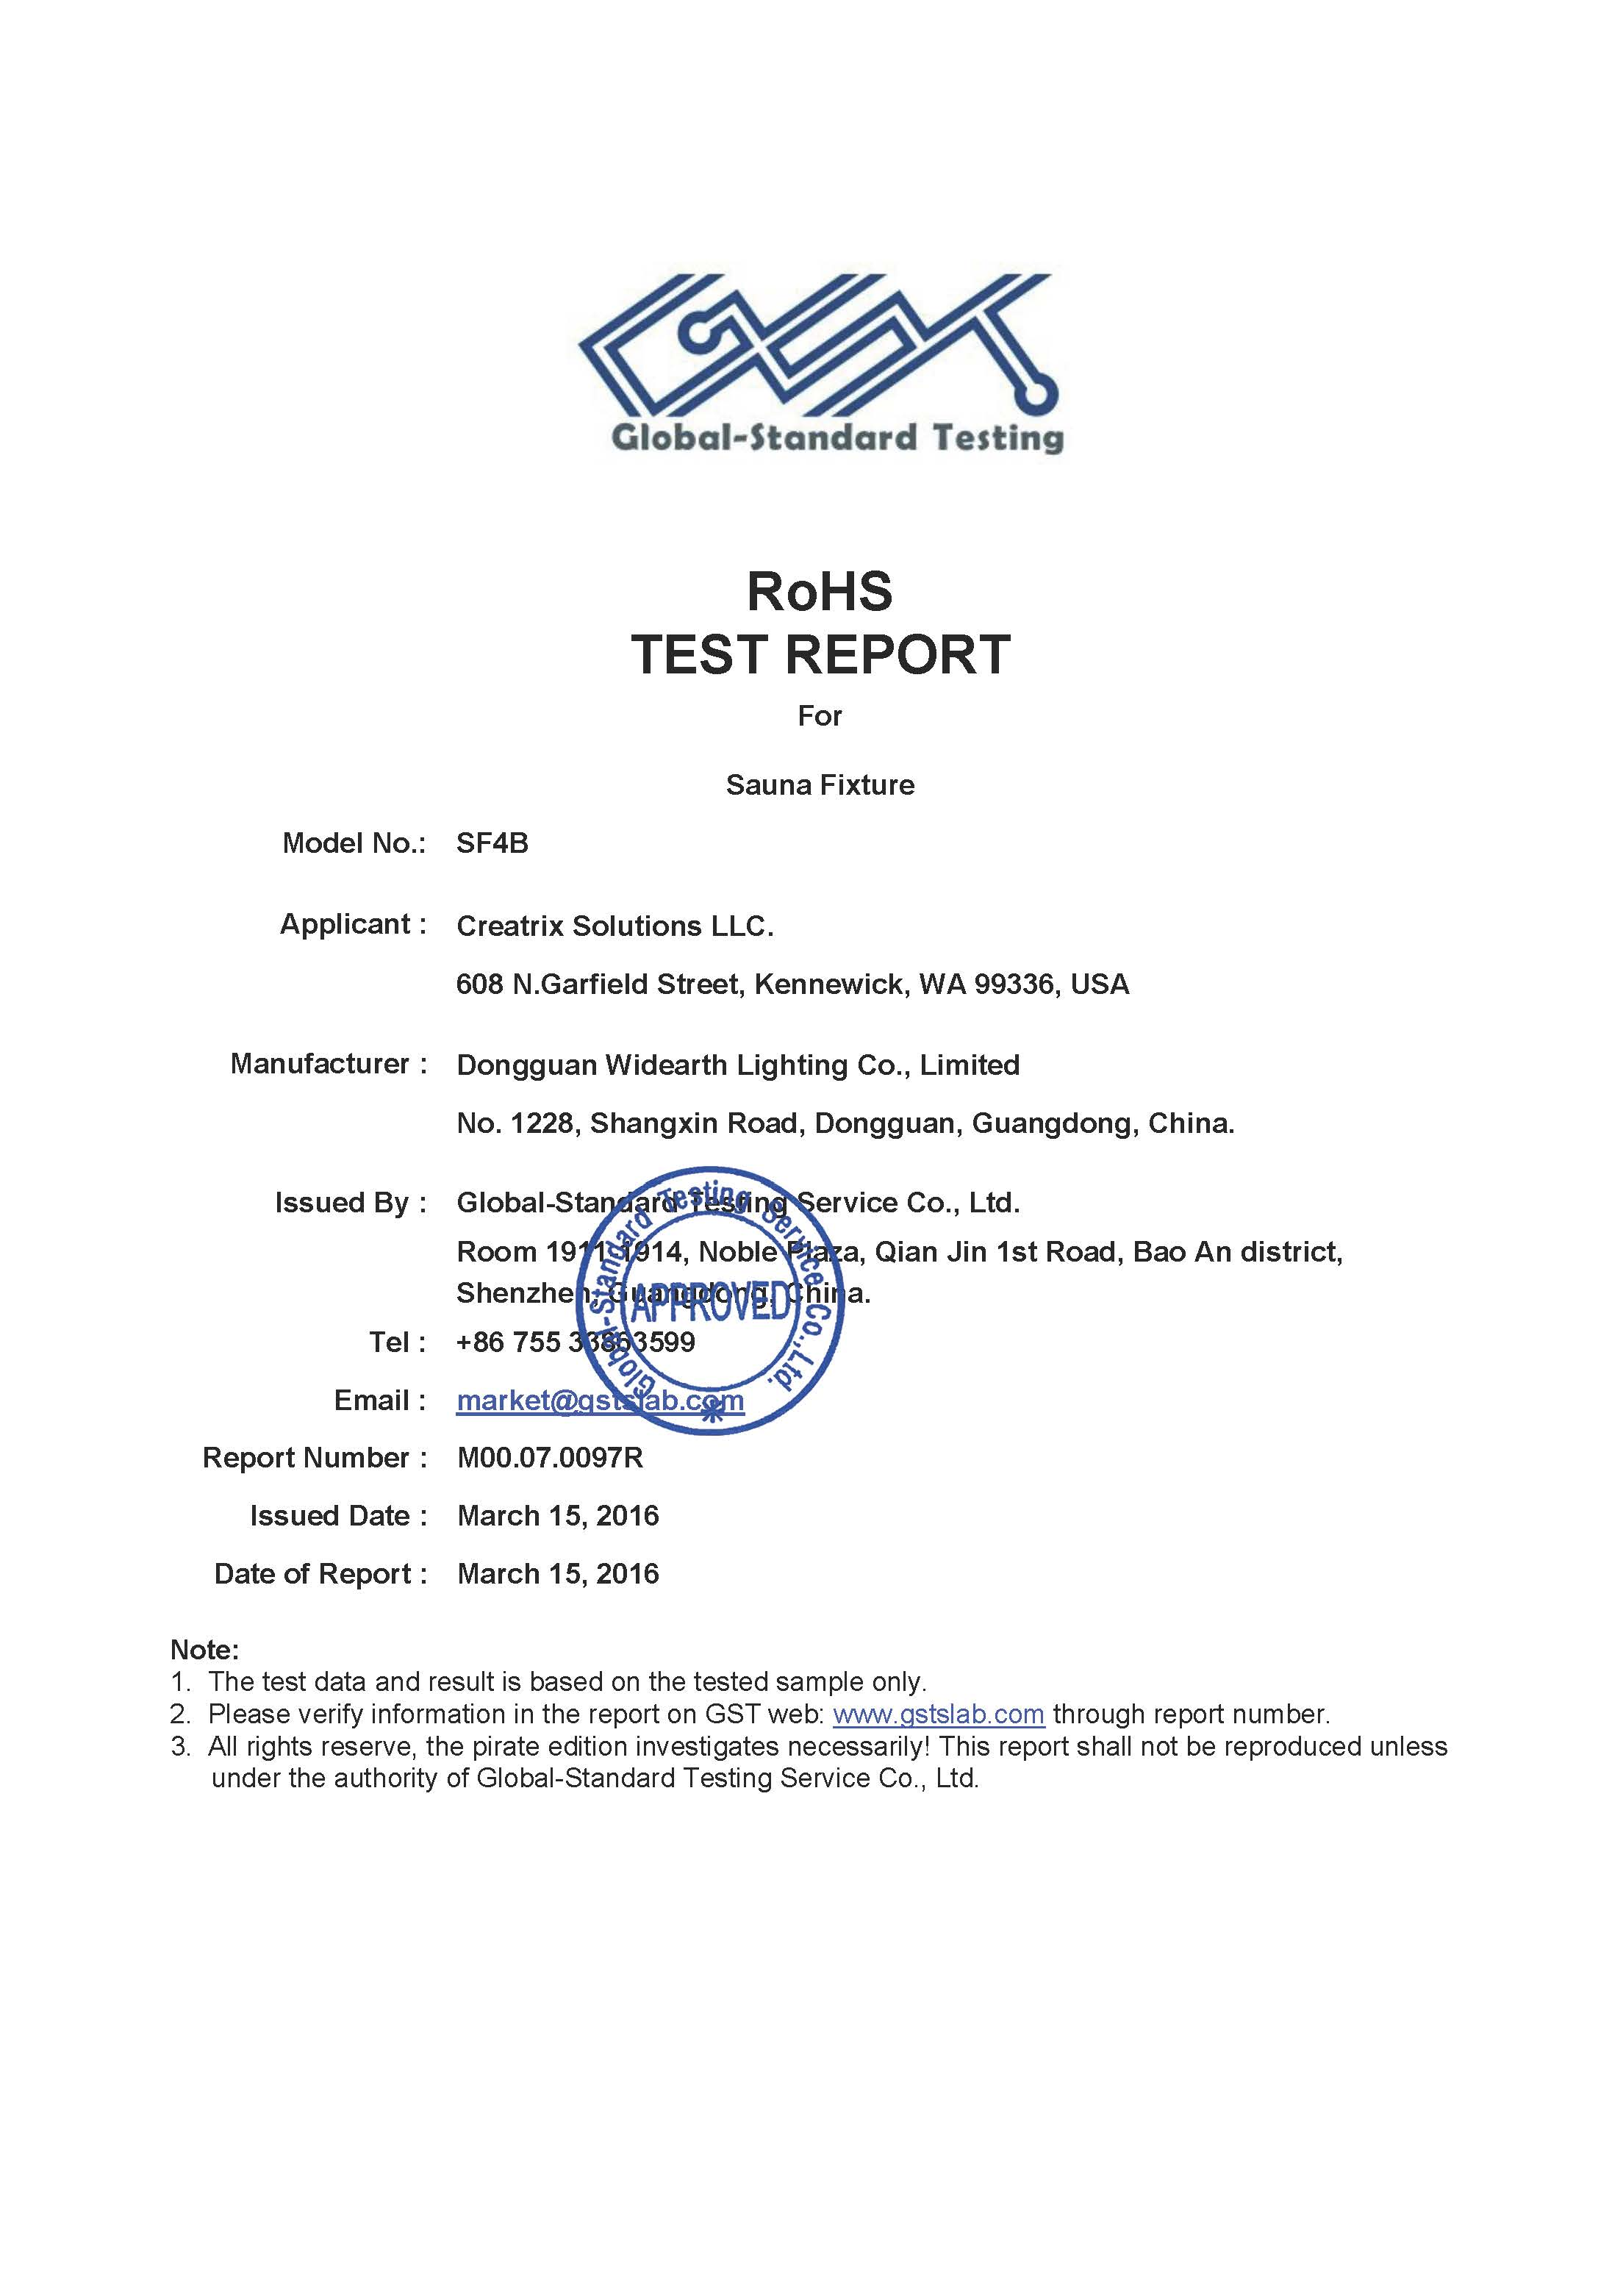 m00.07.0097r-rohs-report-signed-page-01.jpg